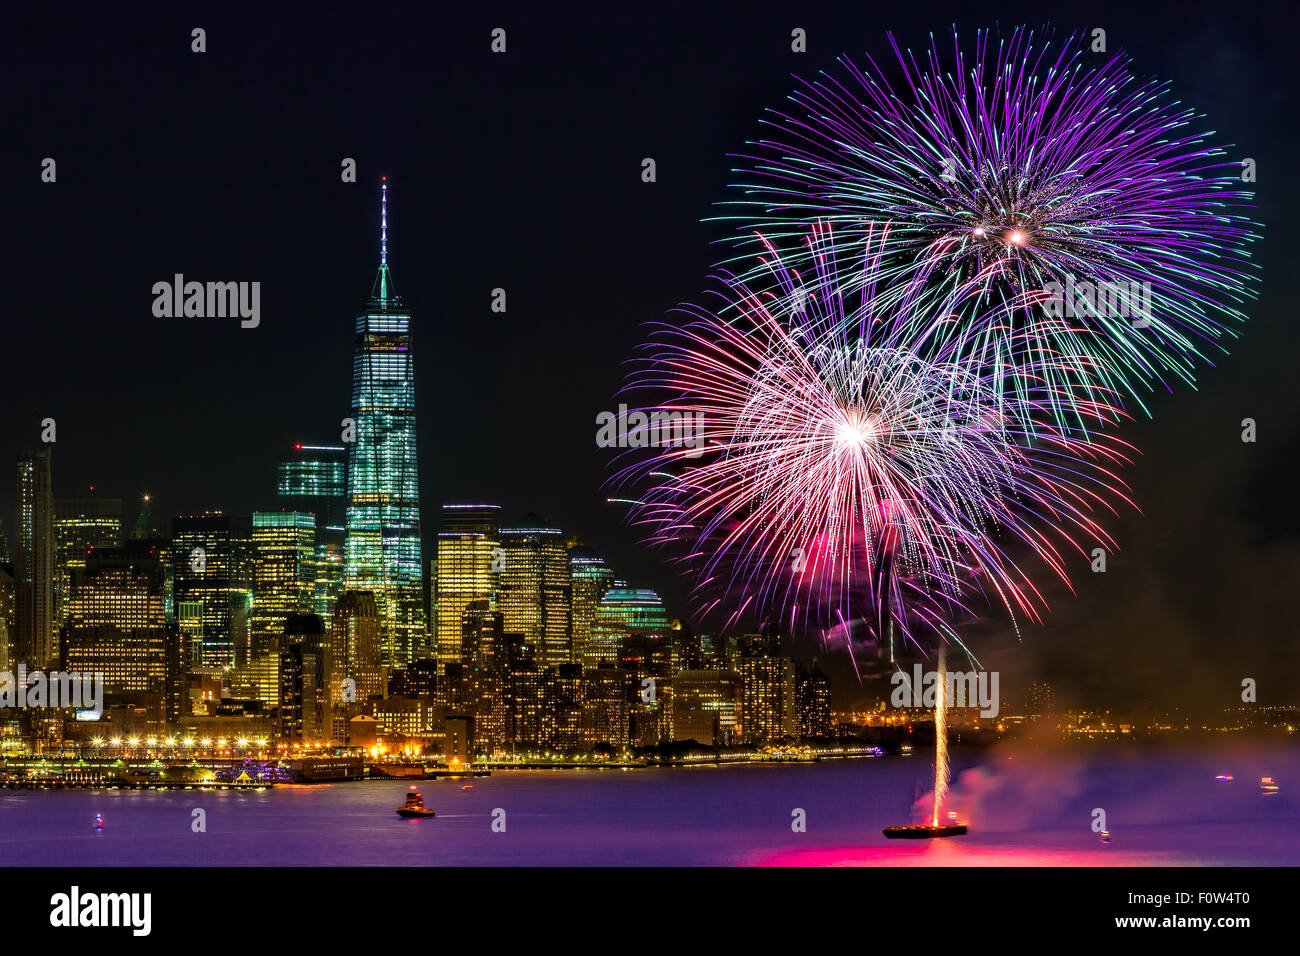 New York City Summer Fireworks - Fireworks Summer display celebration on the Hudson River by Chelsea Pier with One Stock Photo